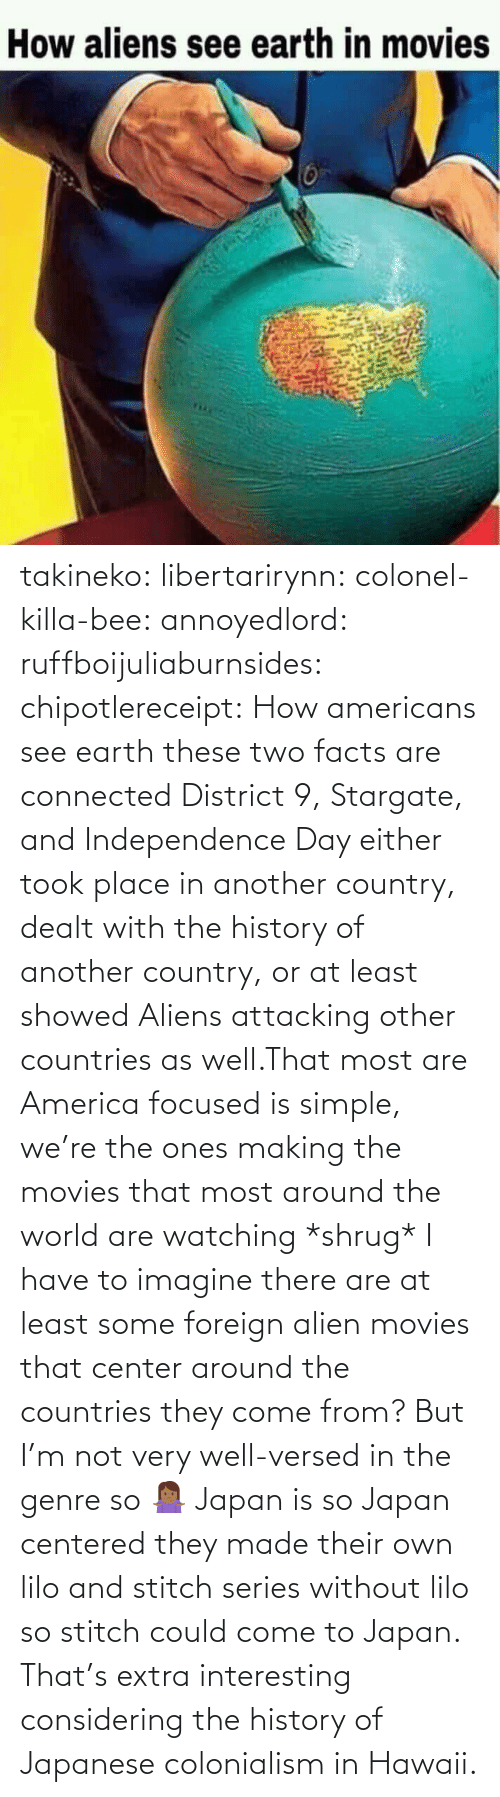 bee: takineko:  libertarirynn:  colonel-killa-bee:  annoyedlord: ruffboijuliaburnsides:  chipotlereceipt: How americans see earth these two facts are connected     District 9, Stargate, and Independence Day either took place in another country, dealt with the history of another country, or at least showed Aliens attacking other countries as well.That most are America focused is simple, we're the ones making the movies that most around the world are watching *shrug*   I have to imagine there are at least some foreign alien movies that center around the countries they come from? But I'm not very well-versed in the genre so 🤷🏾‍♀️   Japan is so Japan centered they made their own lilo and stitch series without lilo so stitch could come to Japan.    That's extra interesting considering the history of Japanese colonialism in Hawaii.